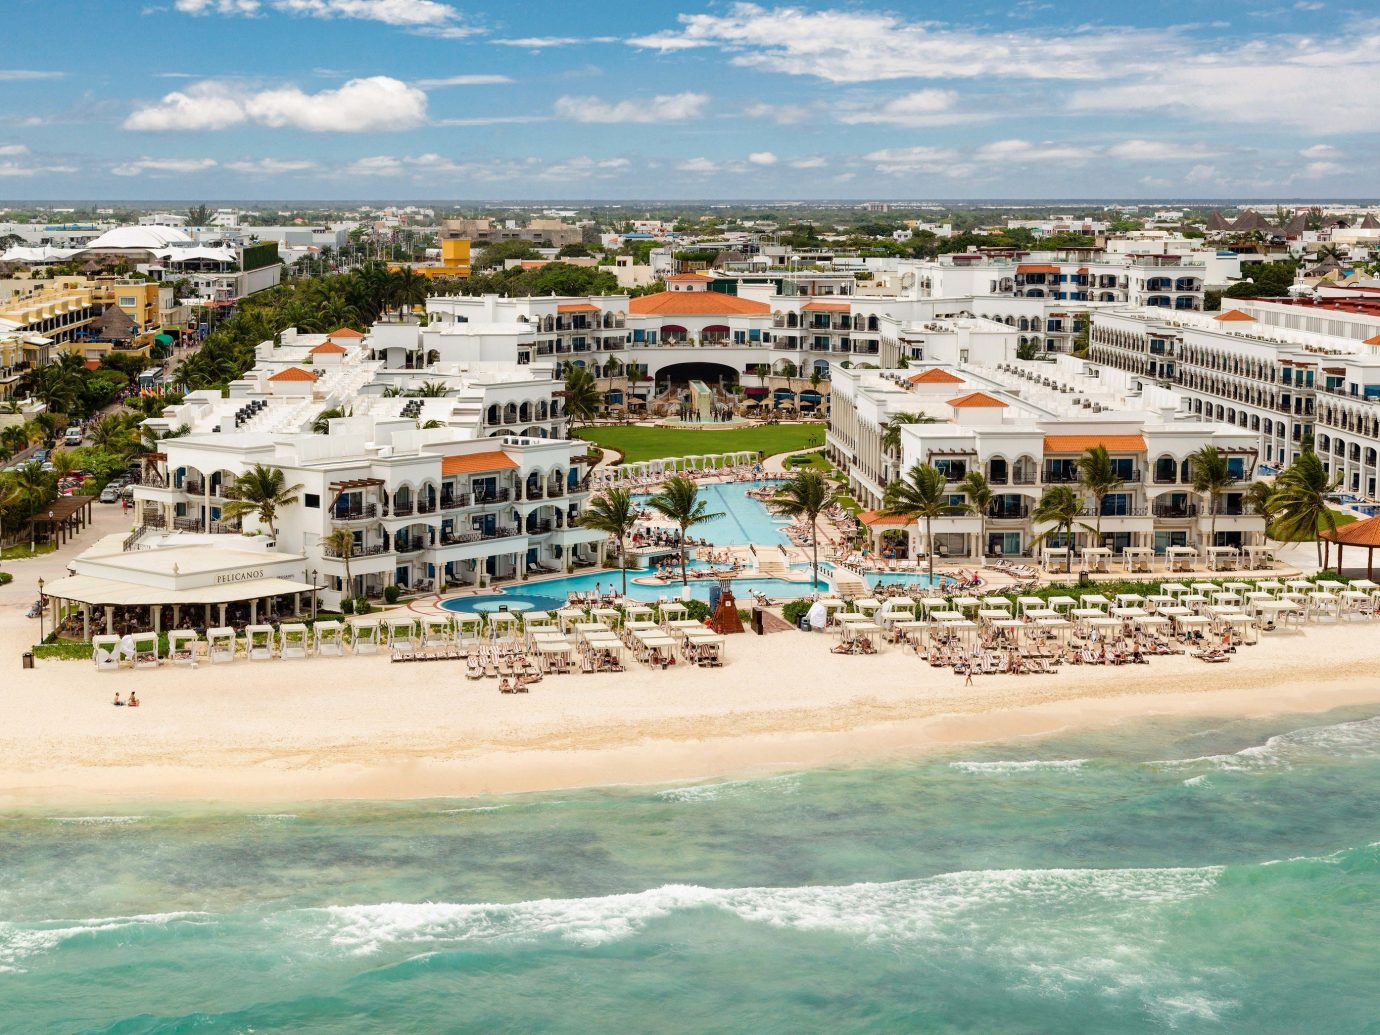 All-inclusive All-Inclusive Resorts Mexico Riviera Maya, Mexico Resort real estate tourism Coast caribbean vacation Beach bay coastal and oceanic landforms resort town estate hotel leisure